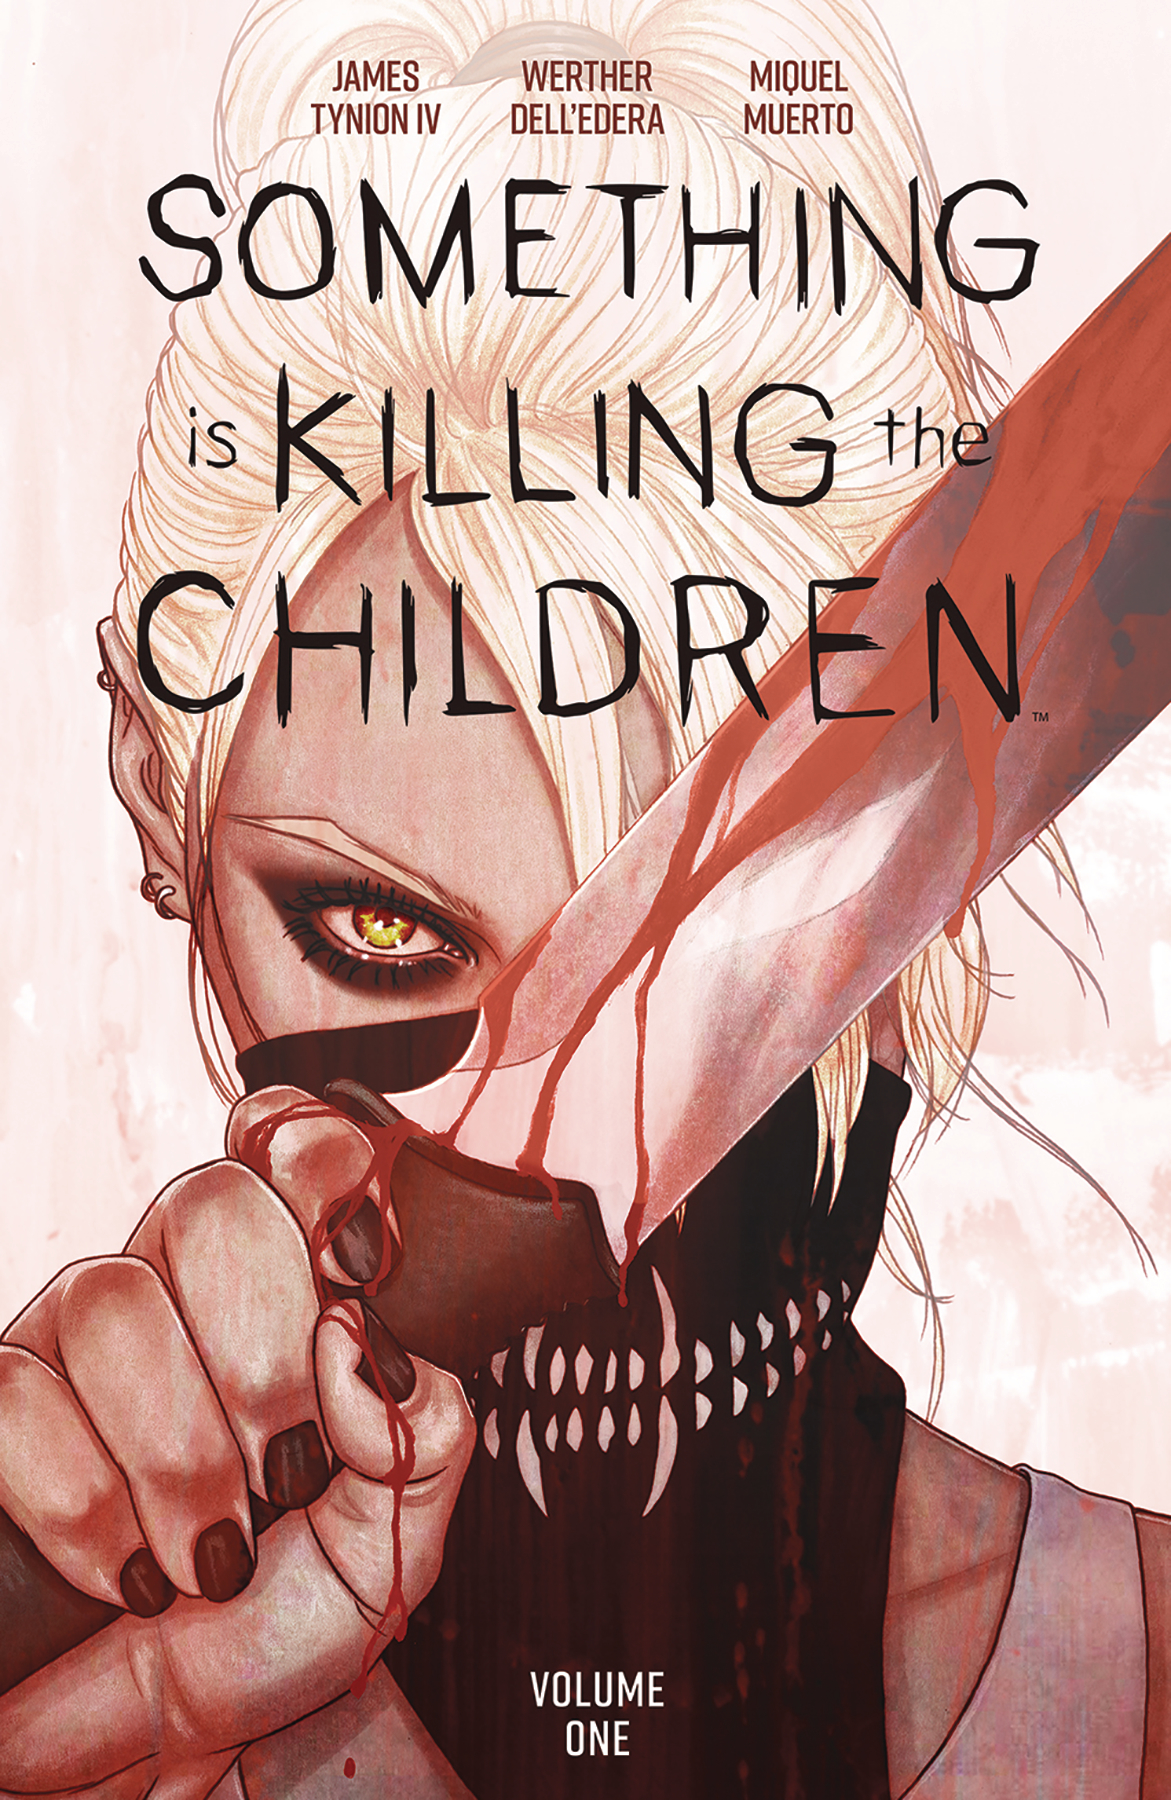 SOMTHING IS KILLING CHILDREN TP VOL 01 DISCOVER NOW